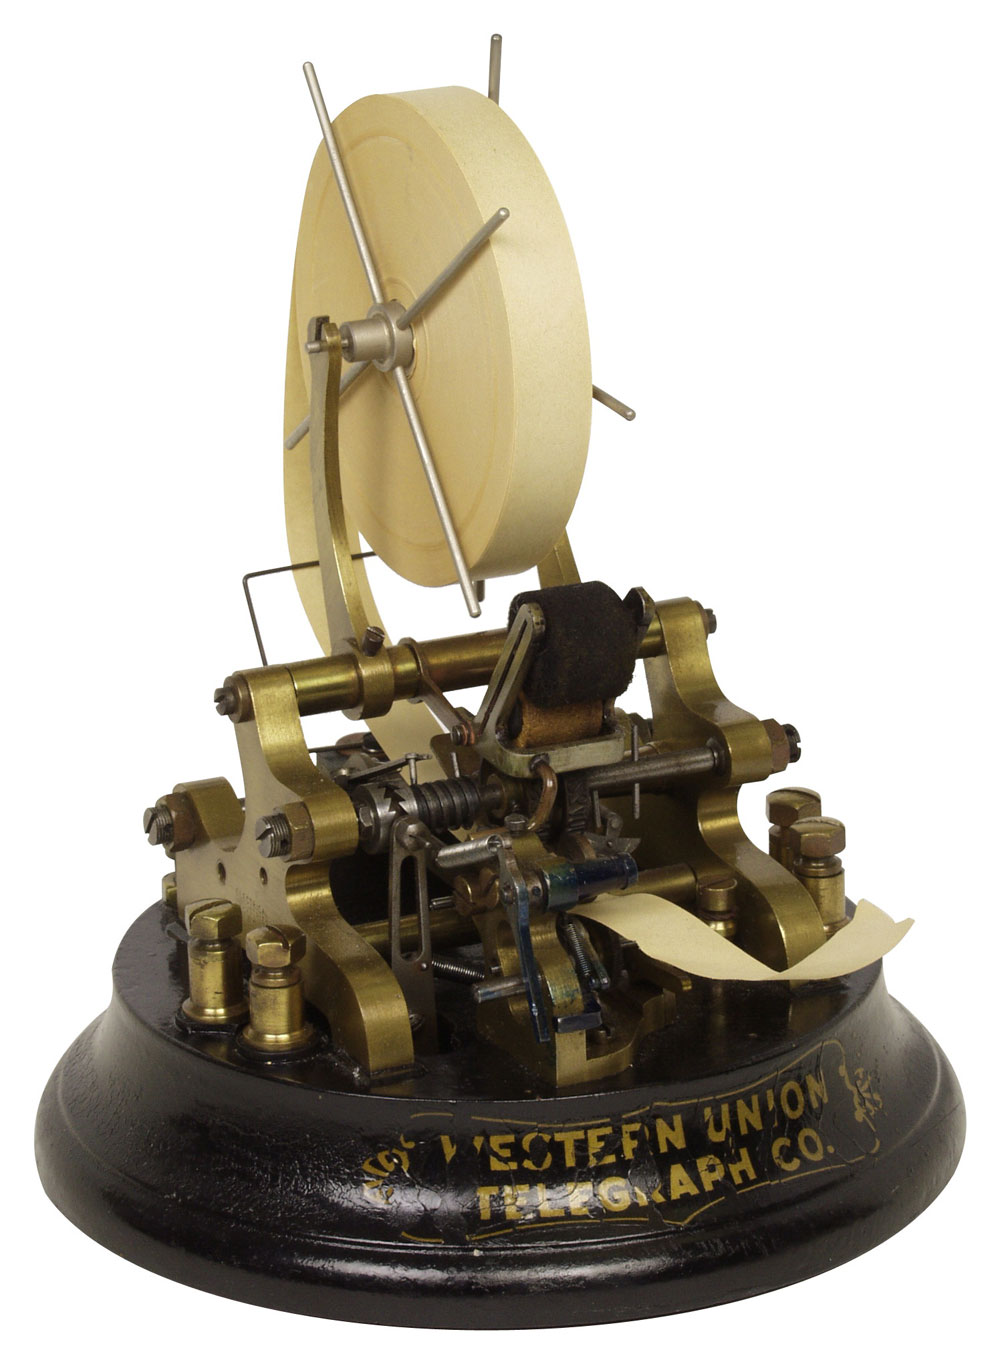 Edison universal stock ticker museum of american finance